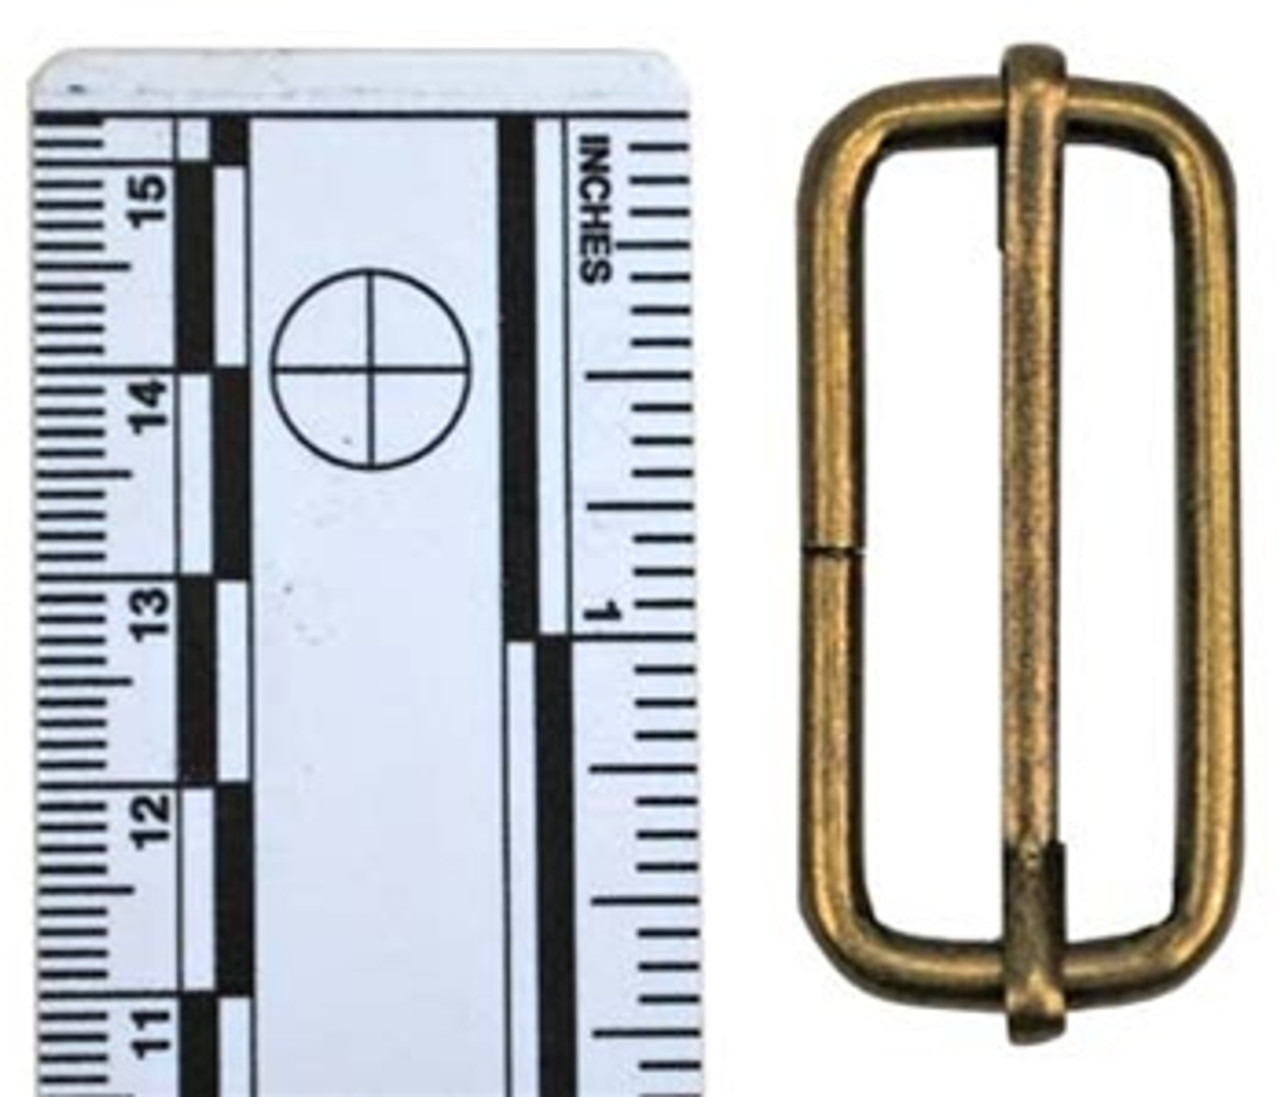 1.5 inch (3.8cm) Friction Slide Buckle. from Hessen Antique